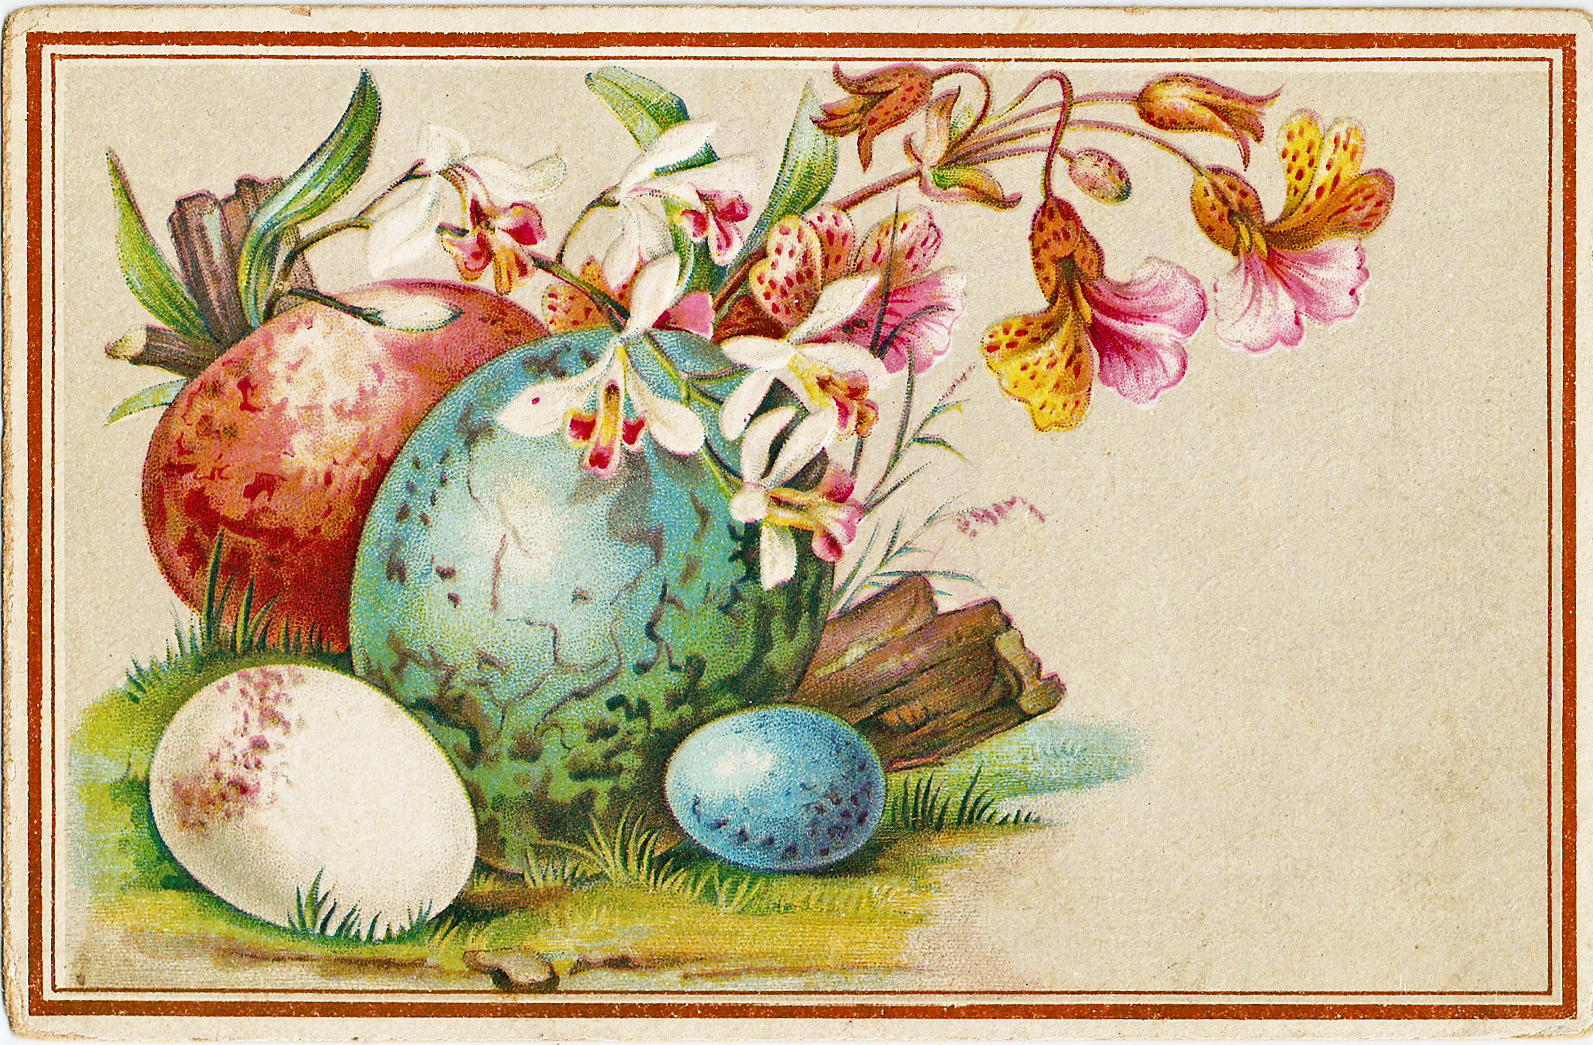 Free vintage easter egg clipart graphic royalty free library Free vintage easter egg clipart - ClipartFest graphic royalty free library